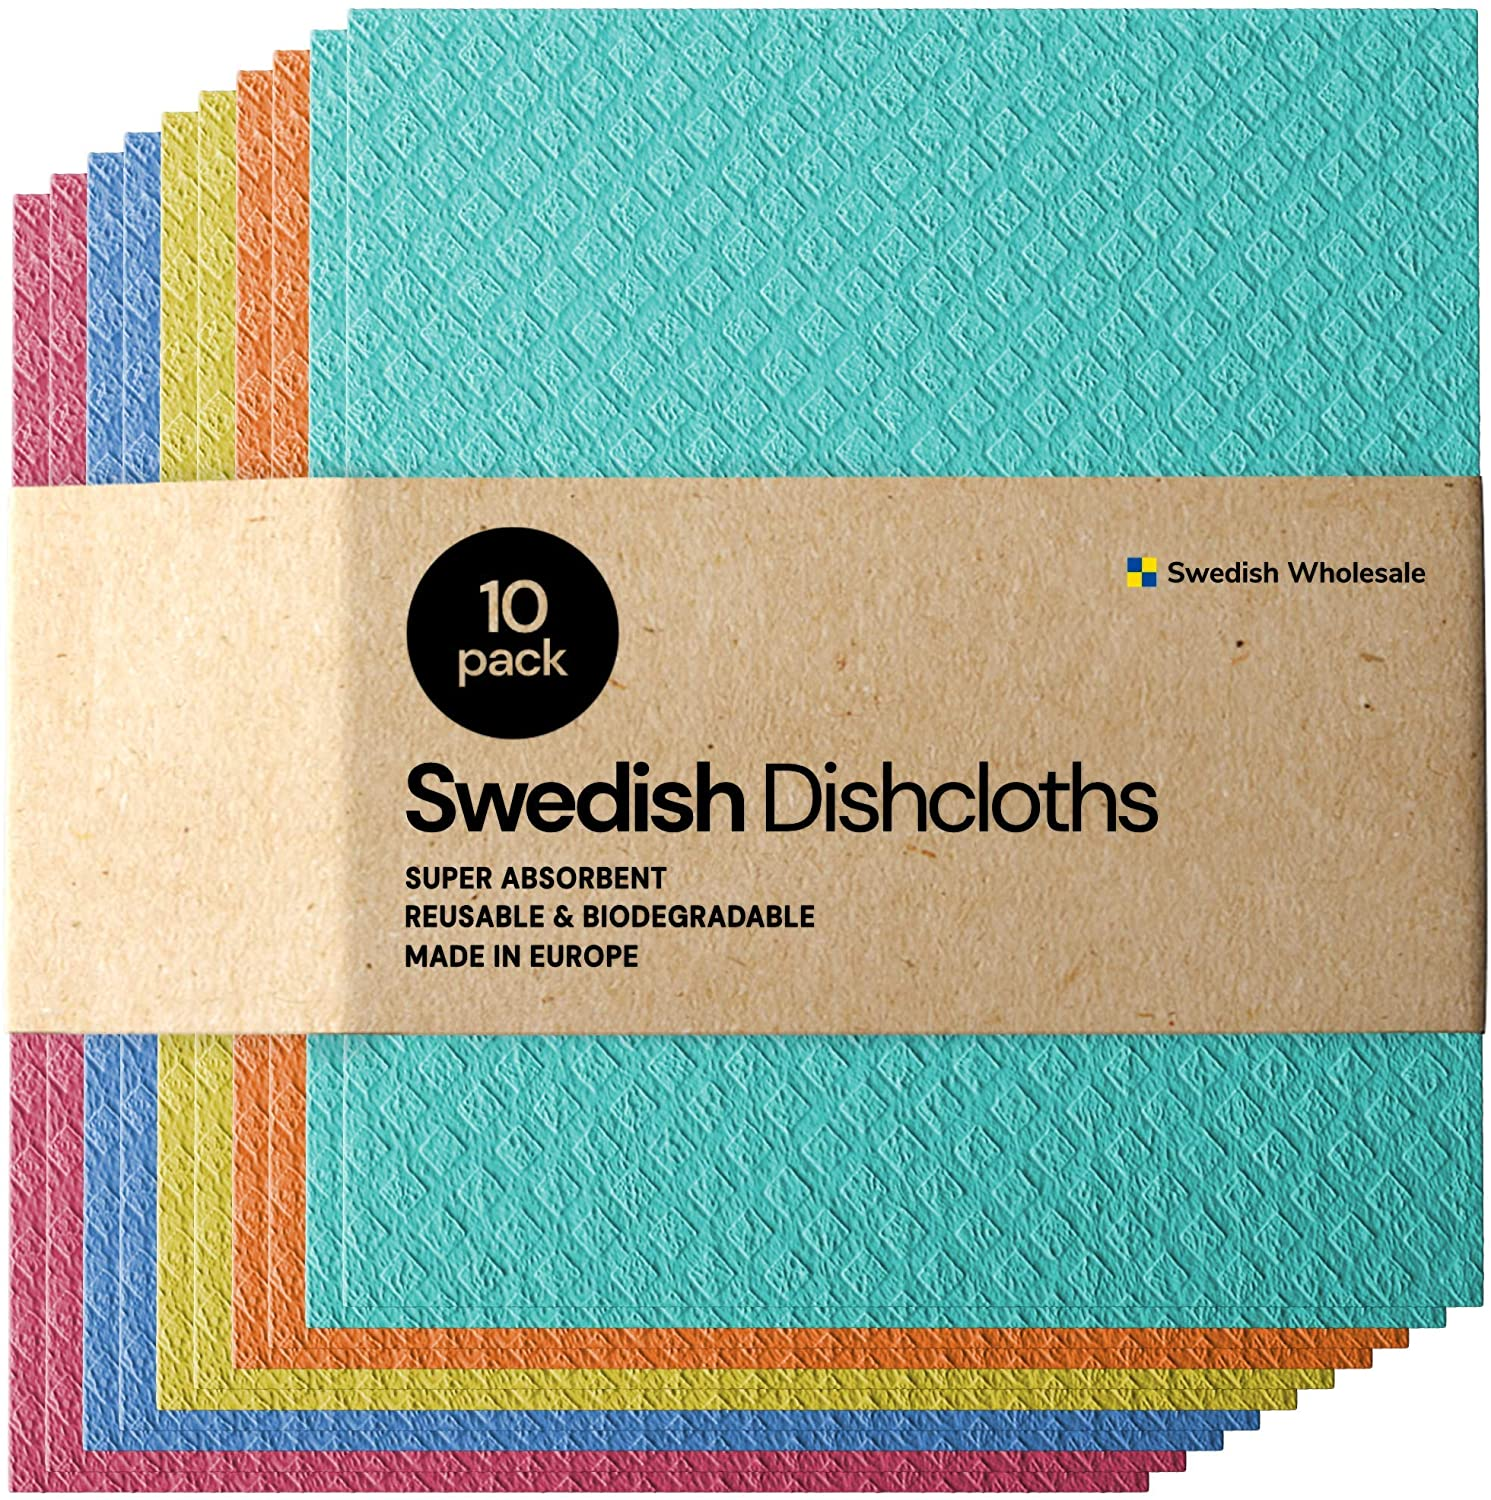 Swedish Dishcloths